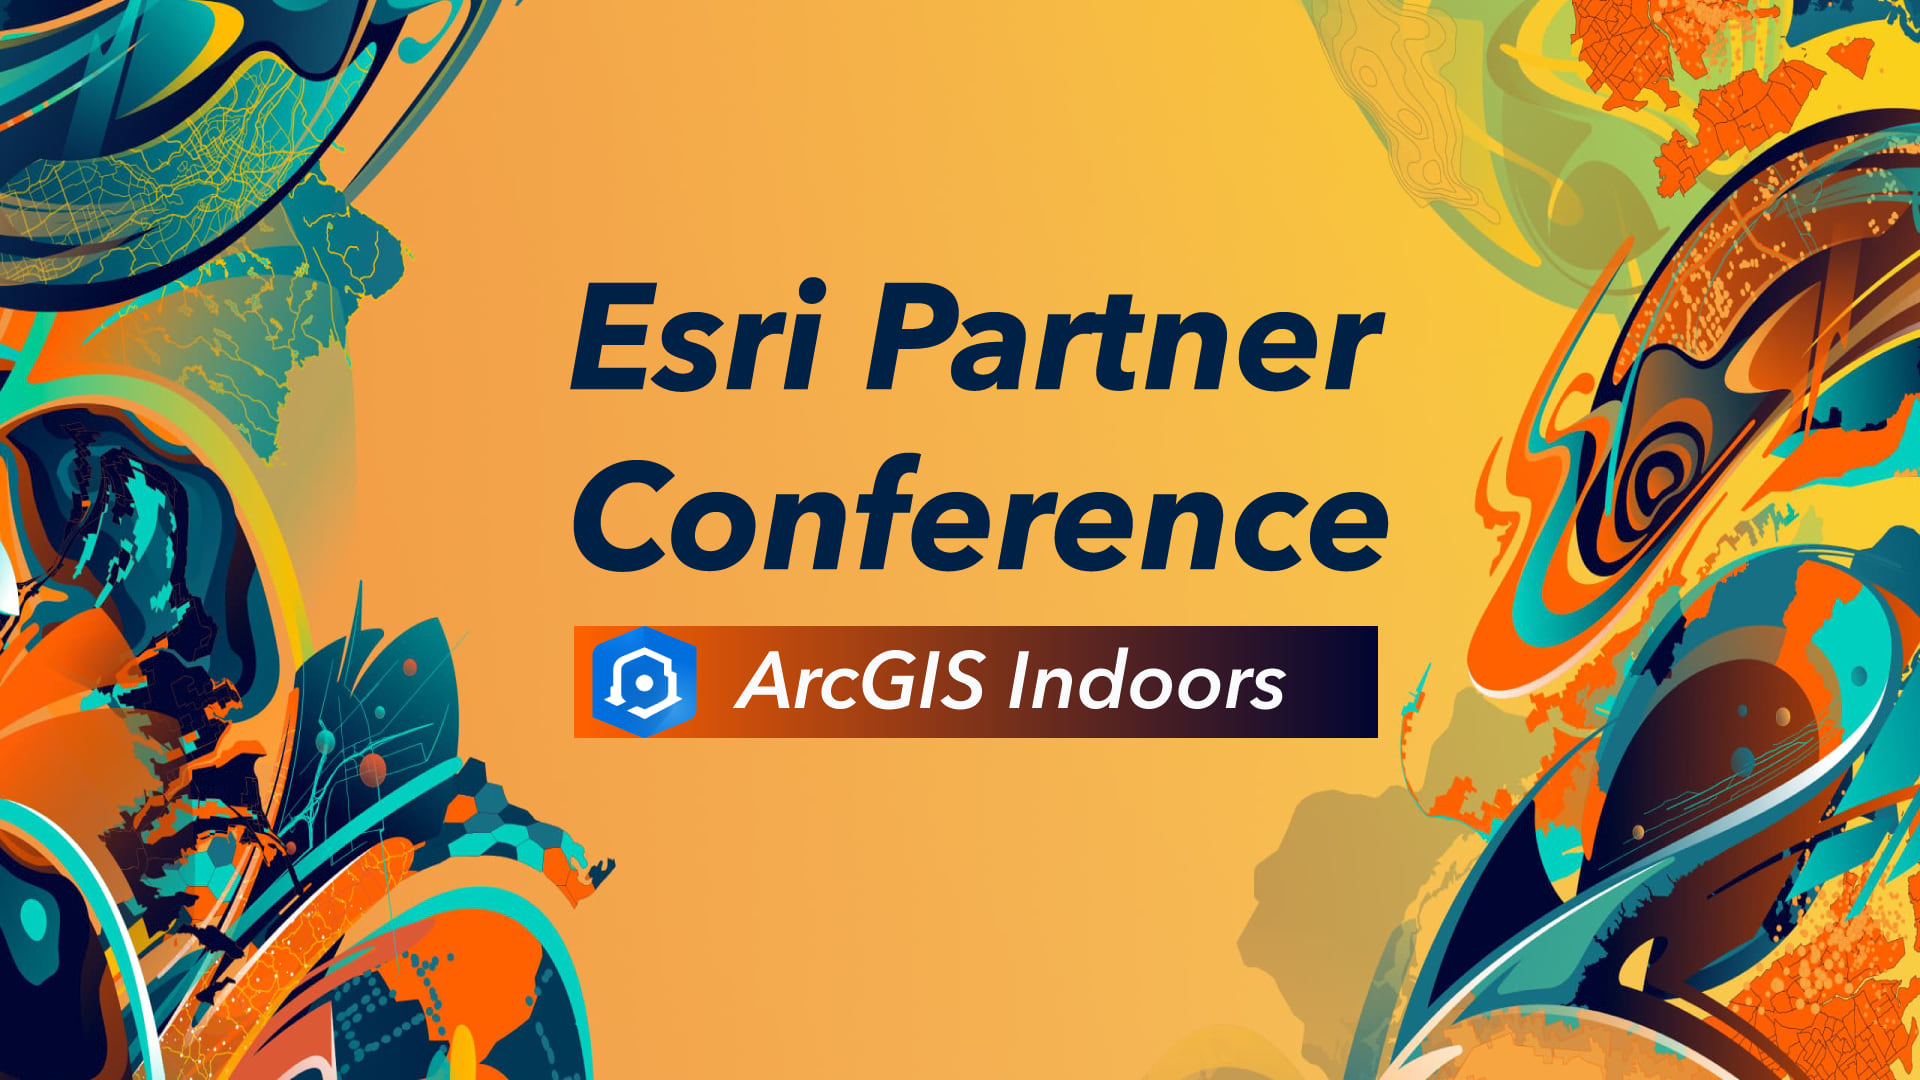 ArcGIS Indoors at 2021 Esri Partner Conference banner